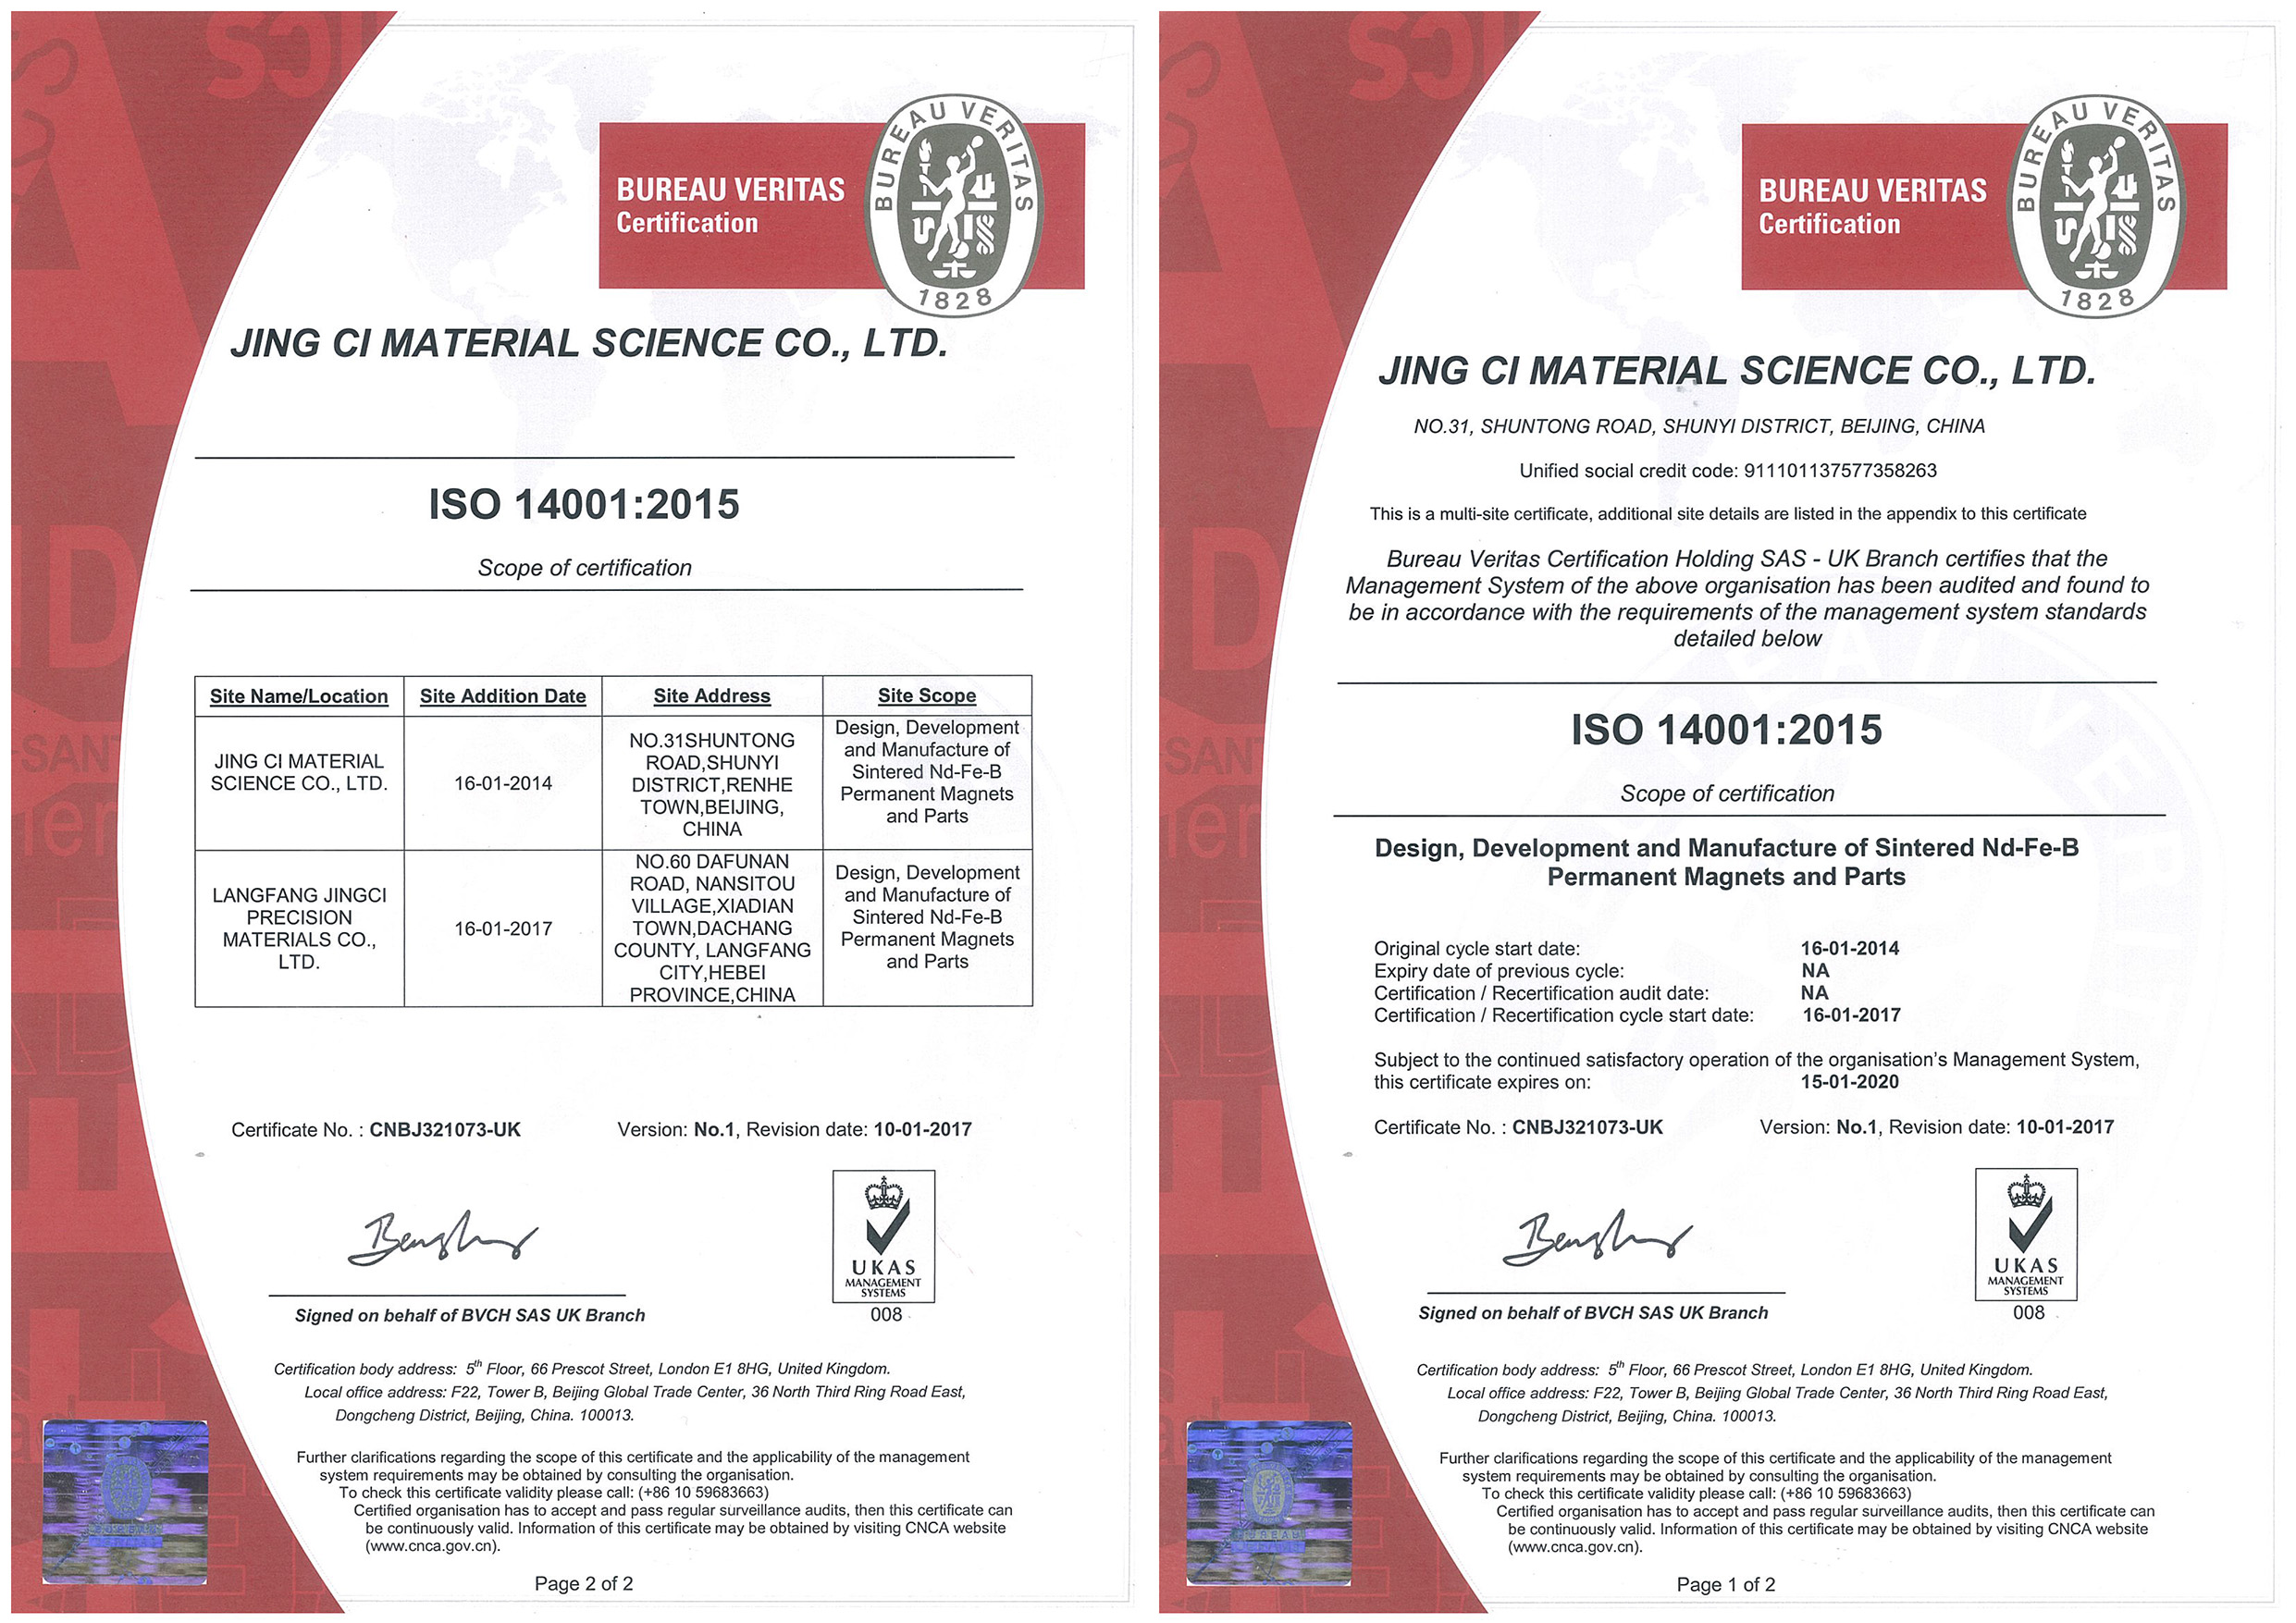 About BJMT ISO 14001 Qualified since 2004